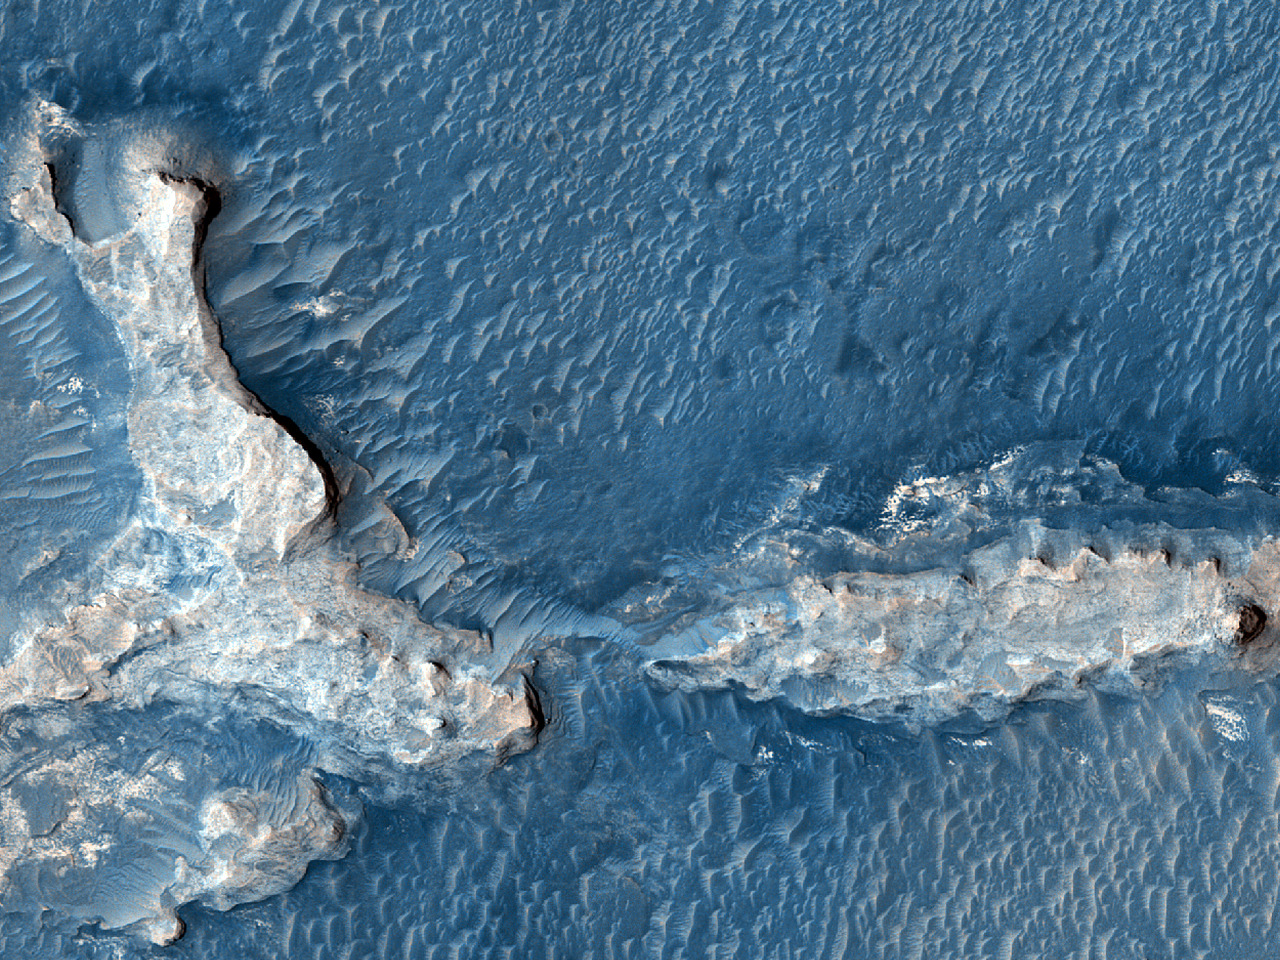 Etched Terrain in Meridiani Planum